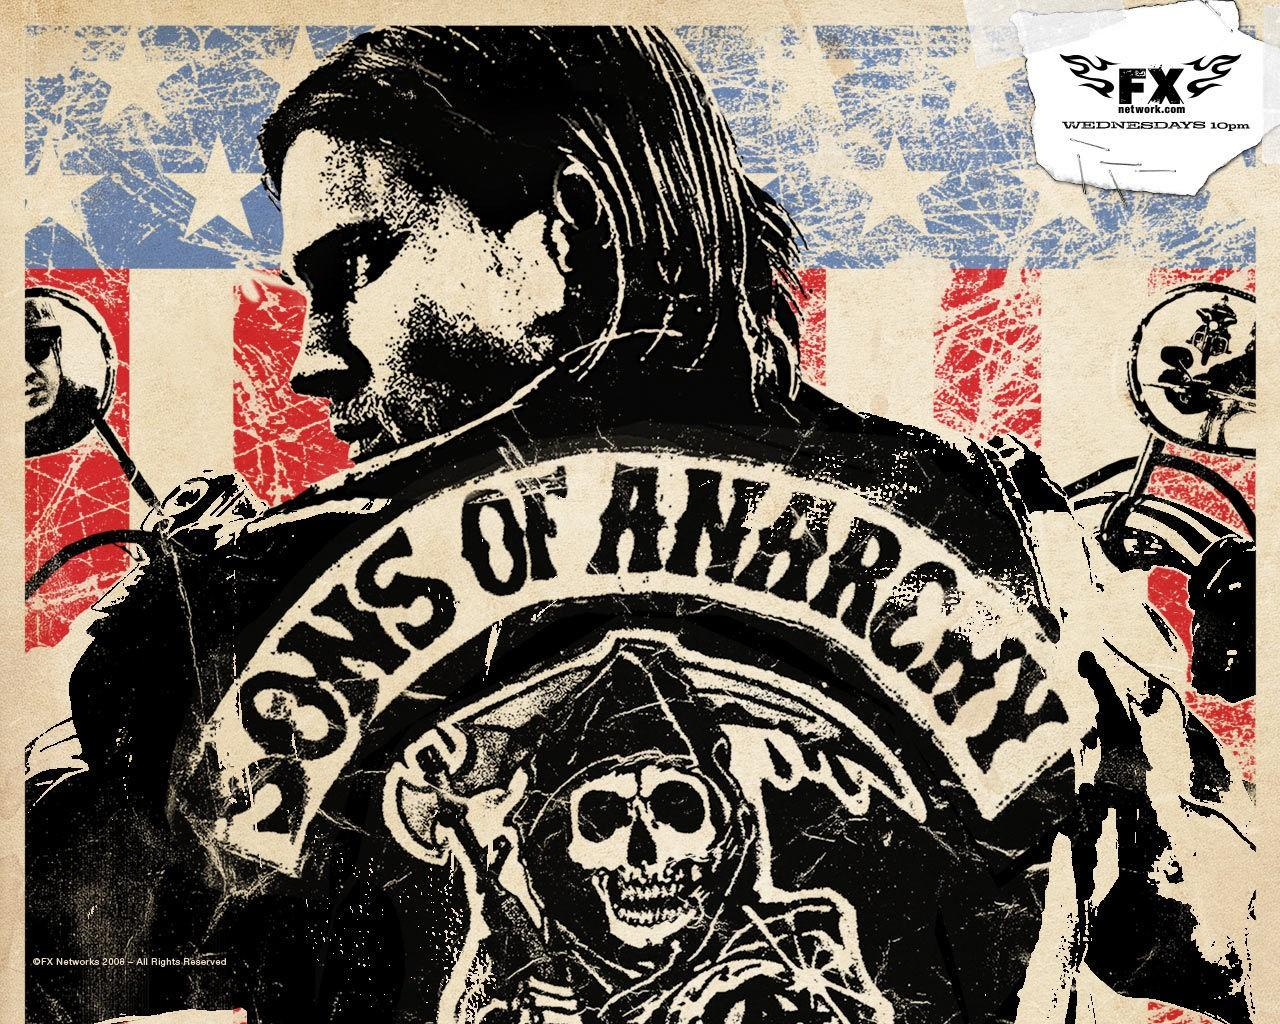 ���� Sons of Anarchy 1280x1024